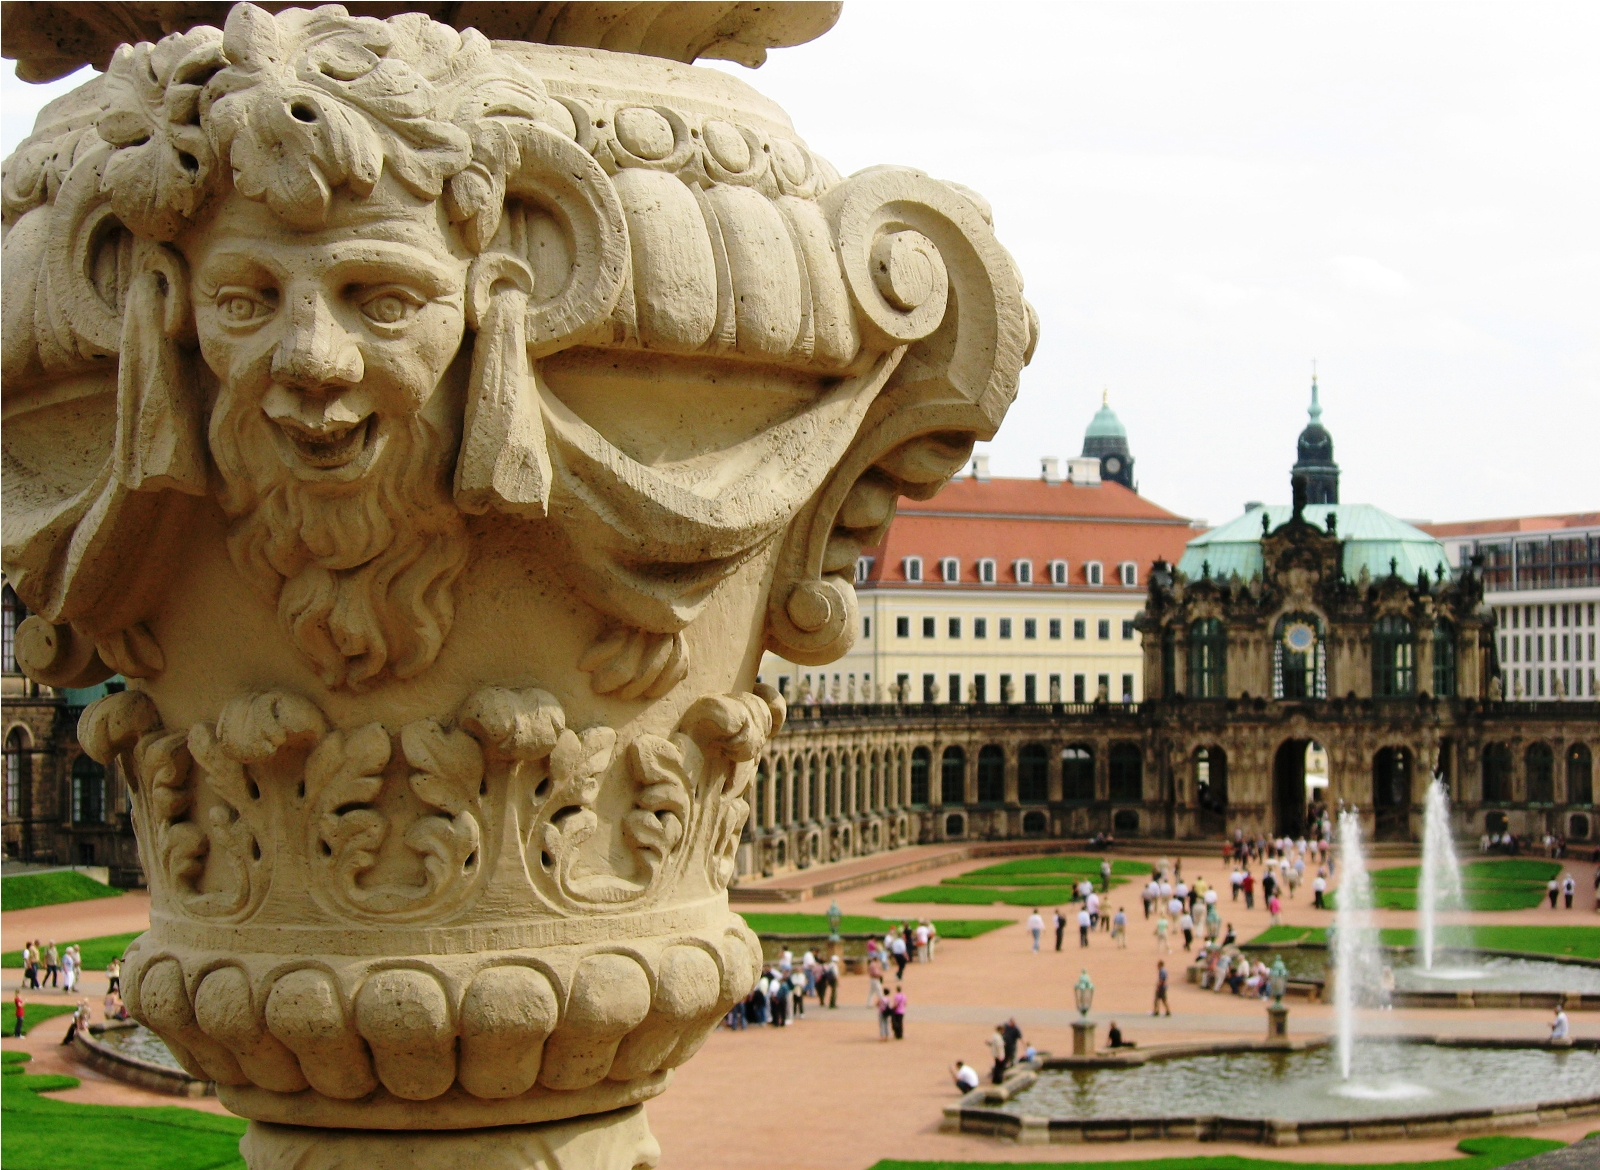 Dresden, Germany, Zwinger baroque palace complex